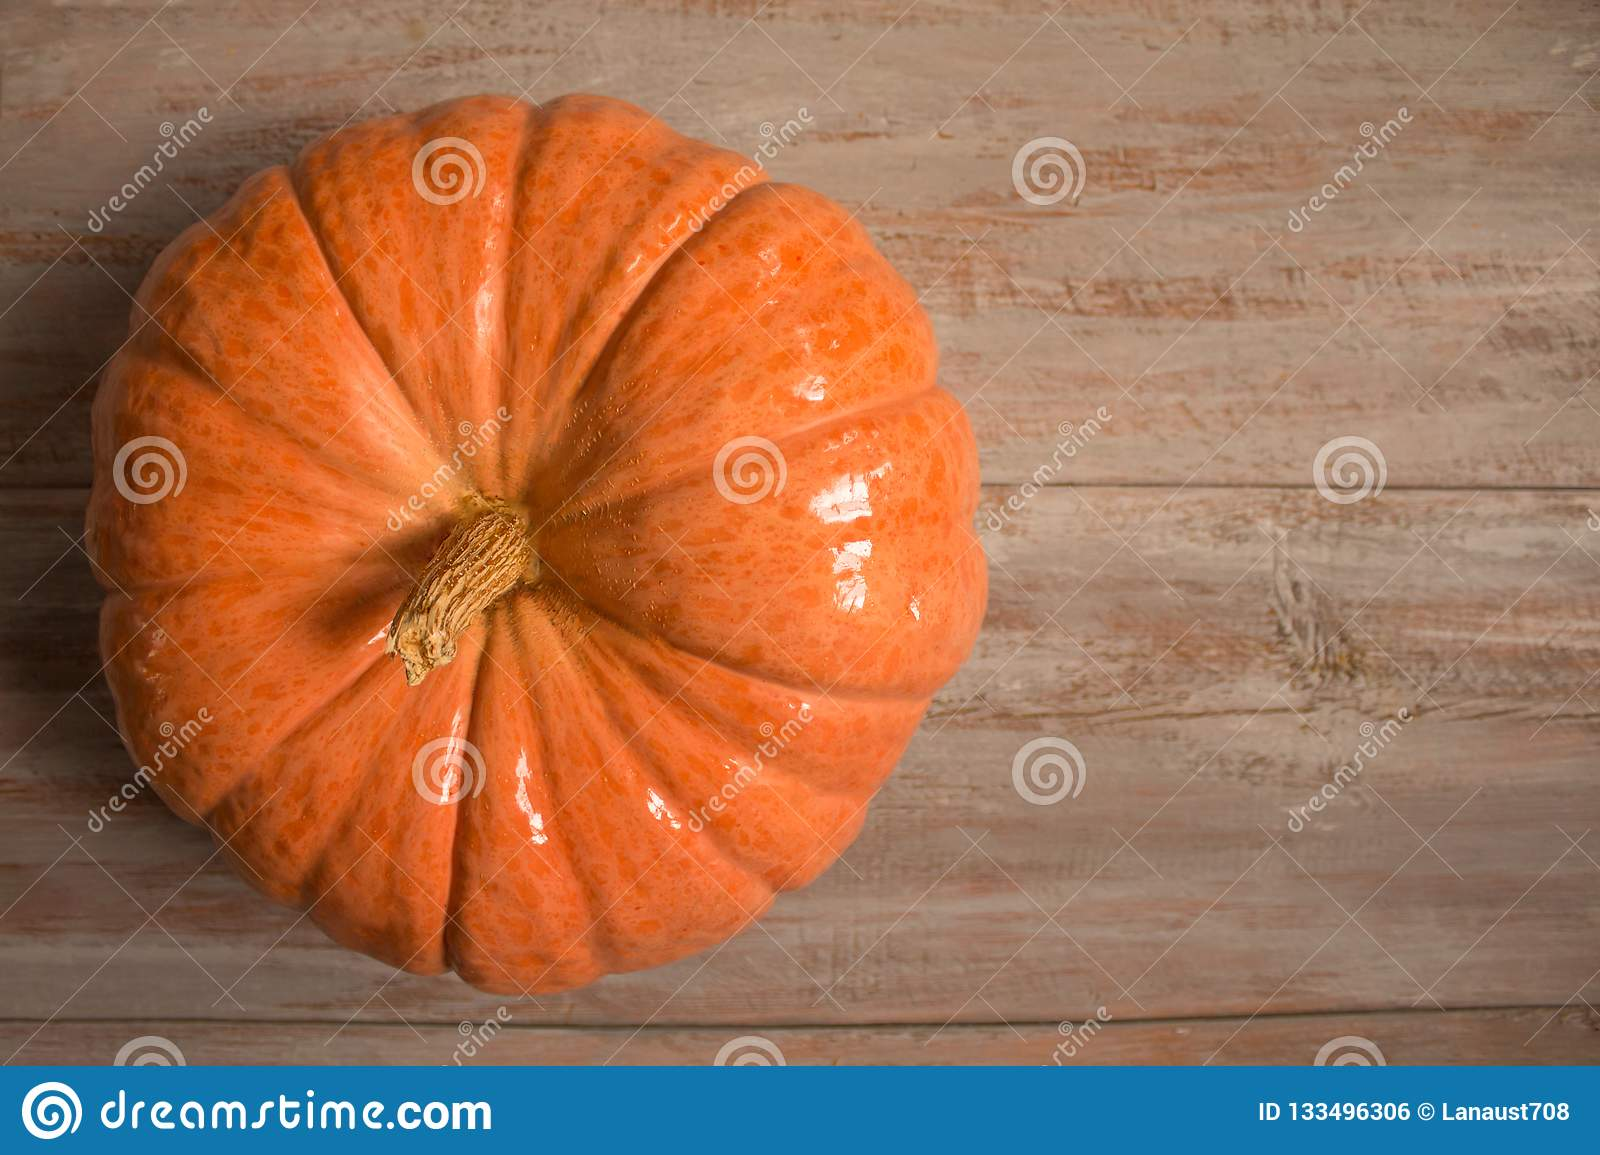 Great orange pumkin on the wooden boards.